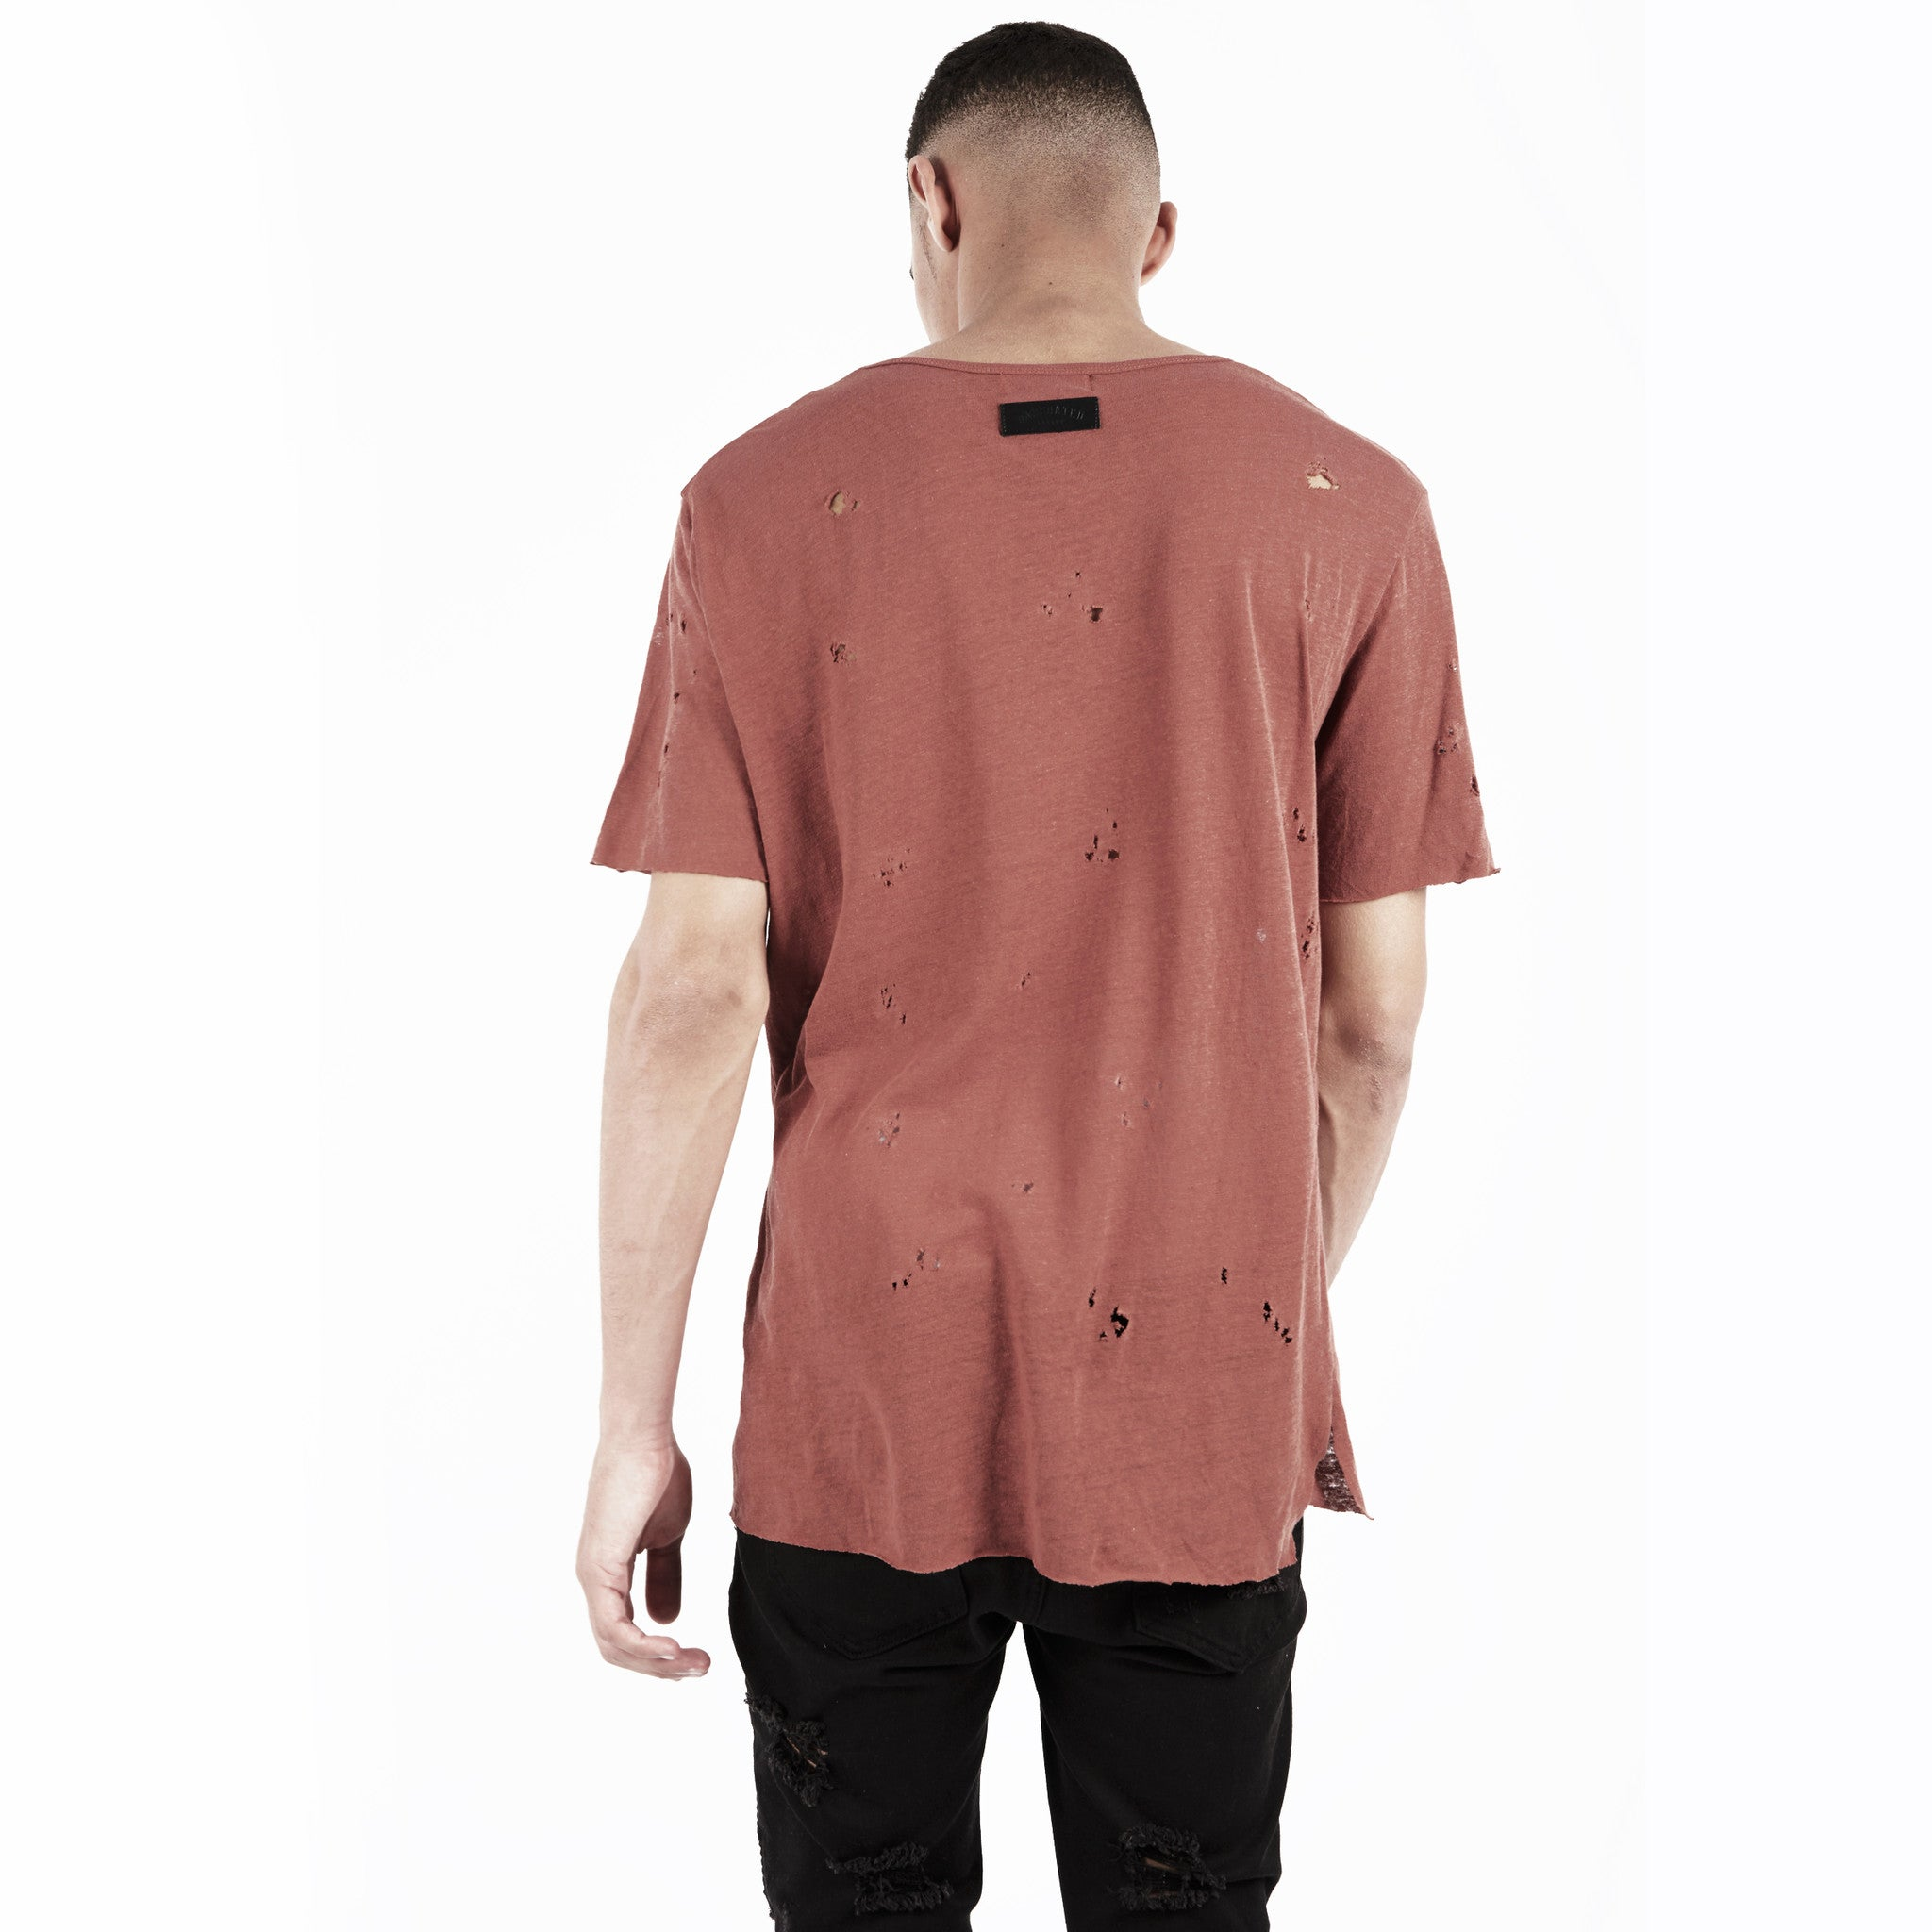 D10V2 Exile Distressed Tee - Rust - underated london - underatedco - 4